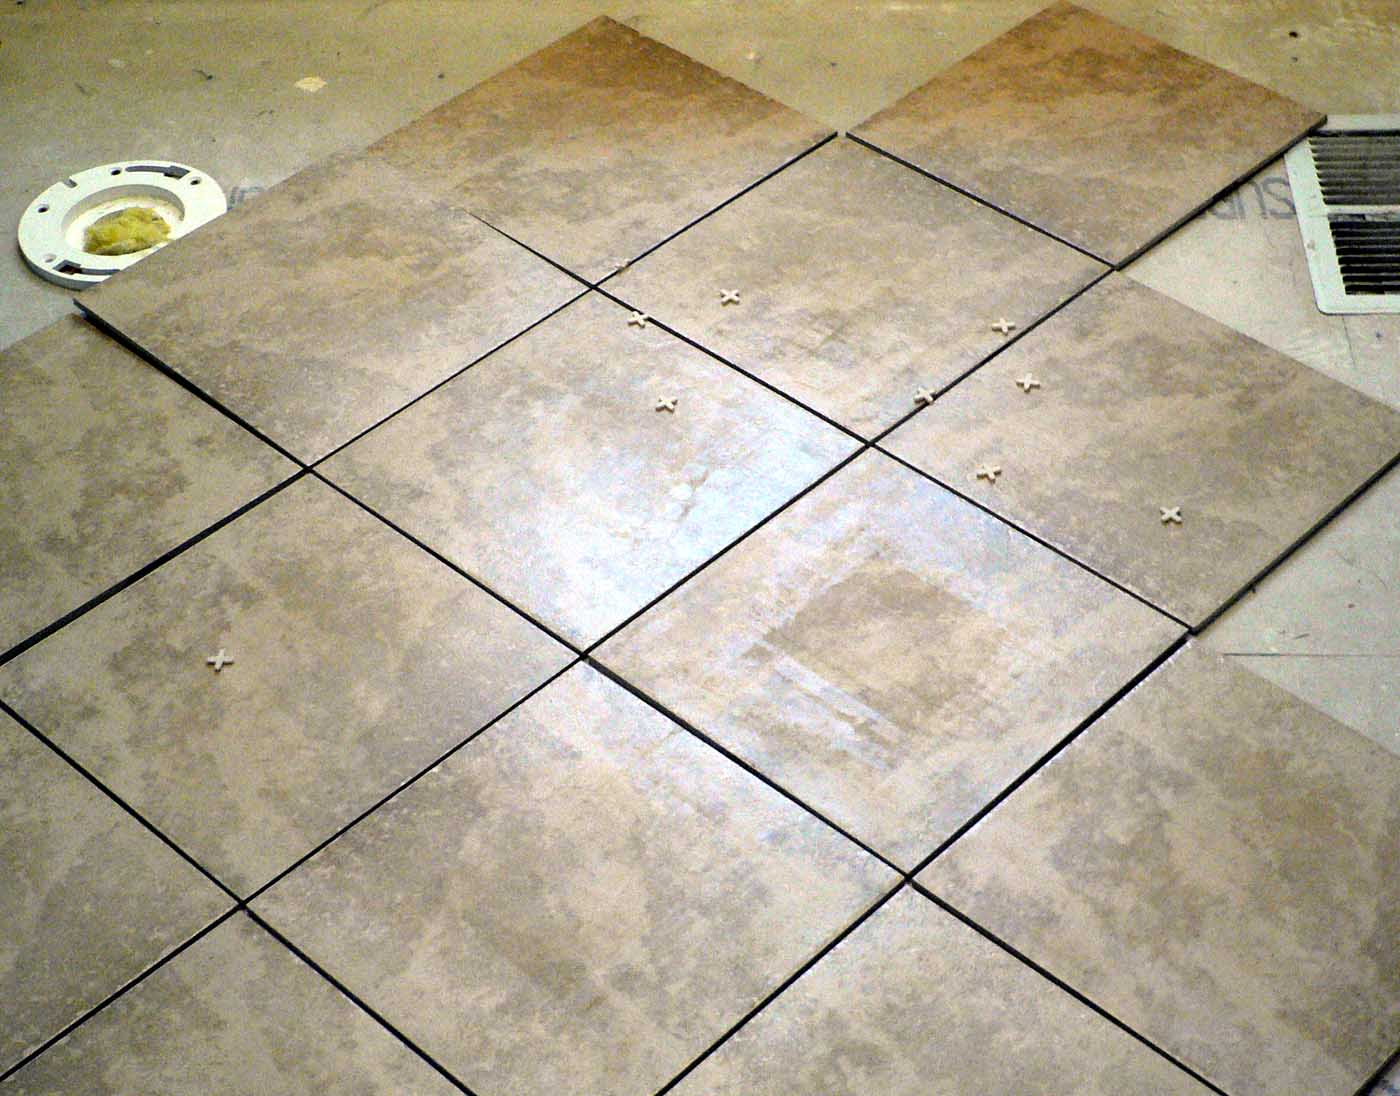 6 inch floor tiles image collections home flooring design 12 inch floor tiles image collections home flooring design the bathroom floor cast your vote snugasabugbaby doublecrazyfo Choice Image